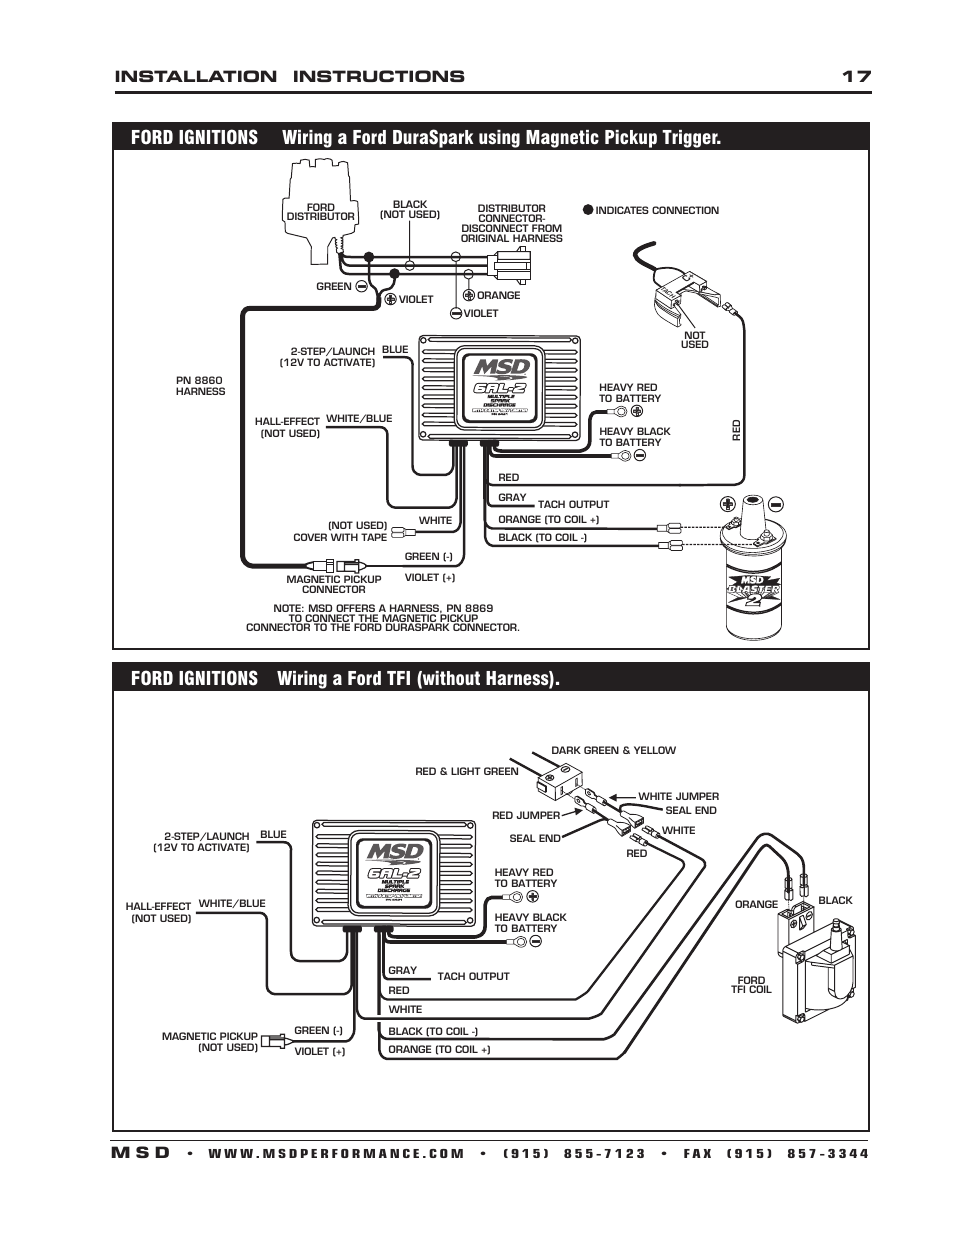 Blodgett Fa 100 Wiring Diagram 30 Images Ata110 B Msd 6421 6al 2 Ignition Control Installation Page17 Two Step Drag Car